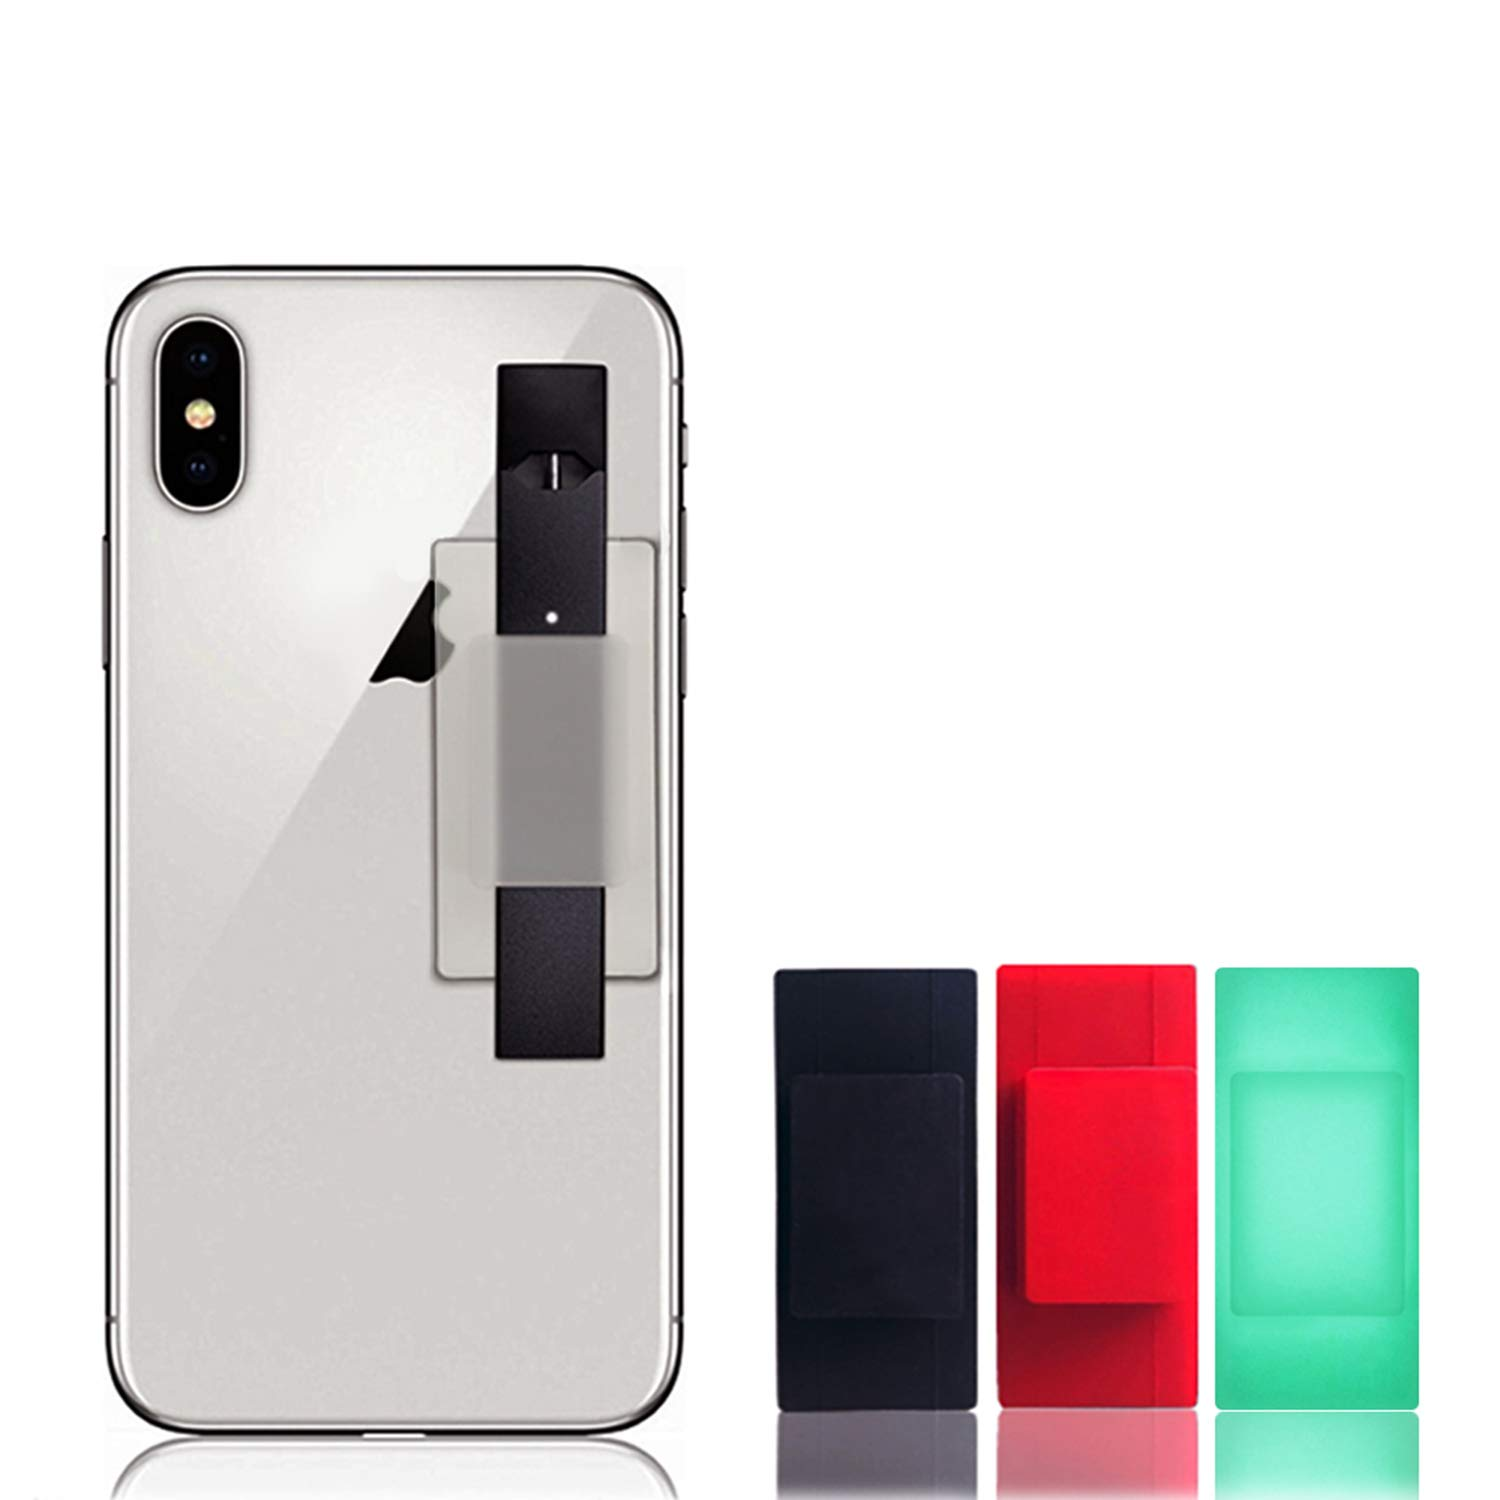 Case Only, No Device Included Car Dashboard Never Forget or Lose Your JUUL 4351663733 Tablets Black Samsung Galaxy Swee Cell Phone Holder Compatible with JUUL Accessory Compatible with iPhone